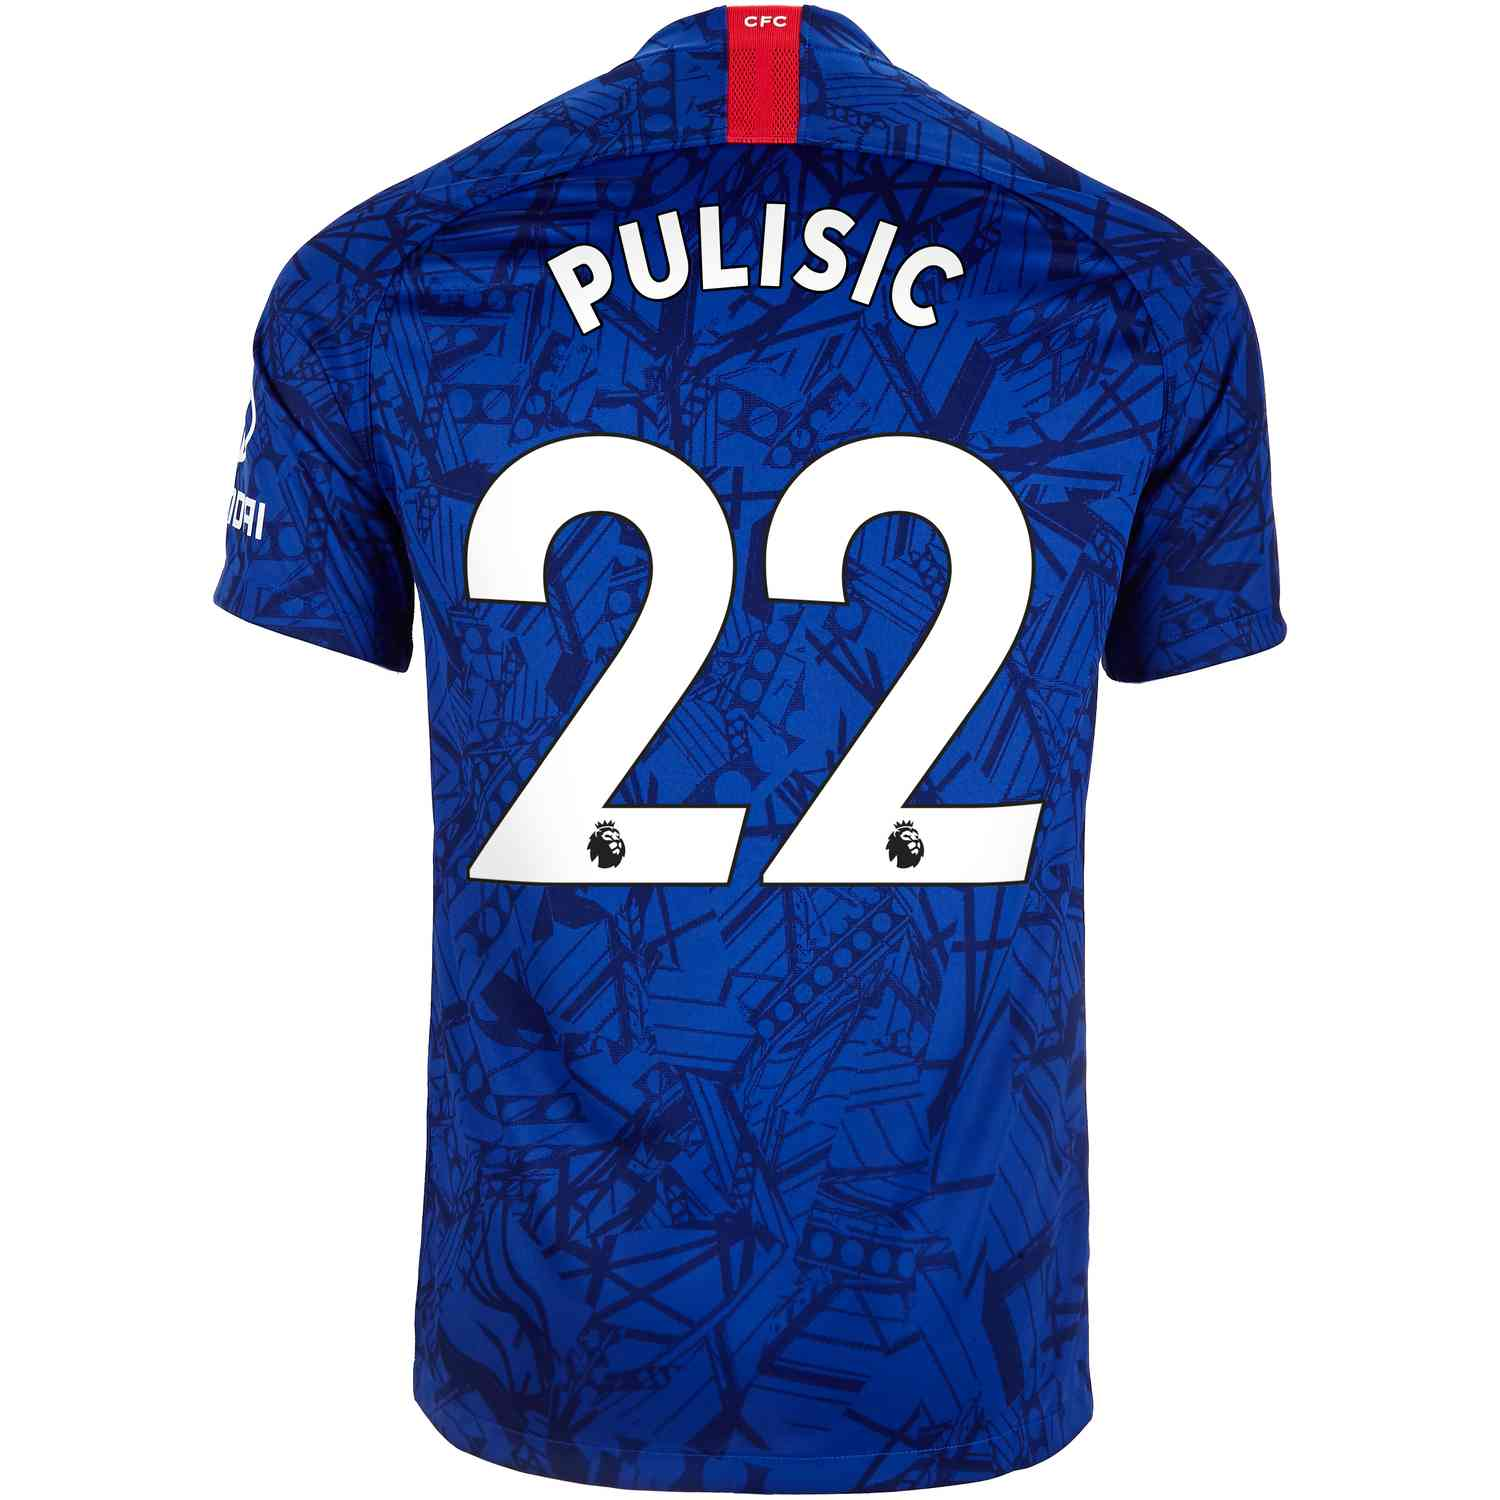 finest selection 80c6e 55d56 2019/20 Kids Christian Pulisic Chelsea Home Jersey